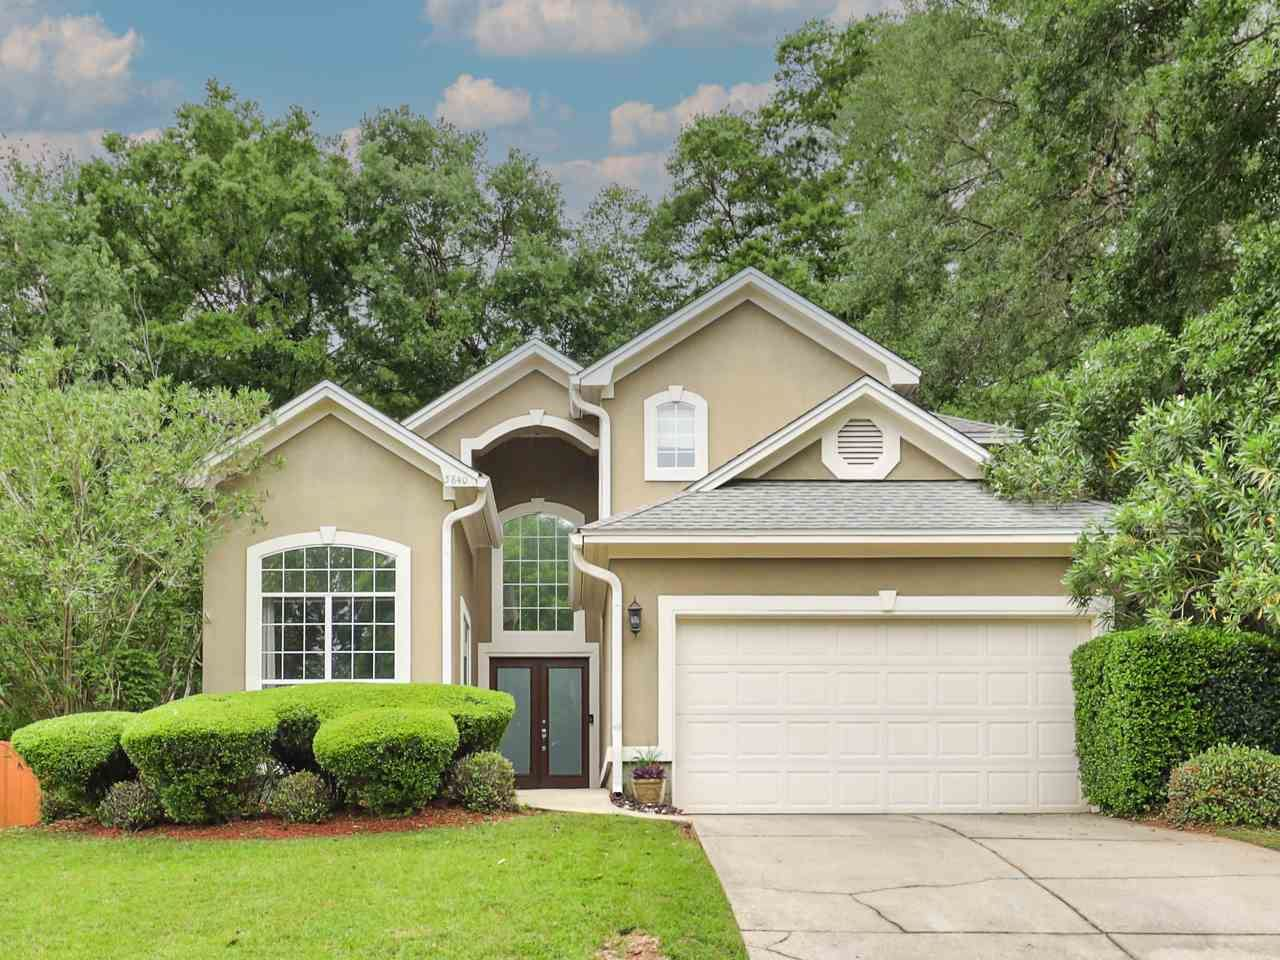 5840 COUNTRYSIDE Drive, Tallahassee, FL 32317 - MLS#: 330989